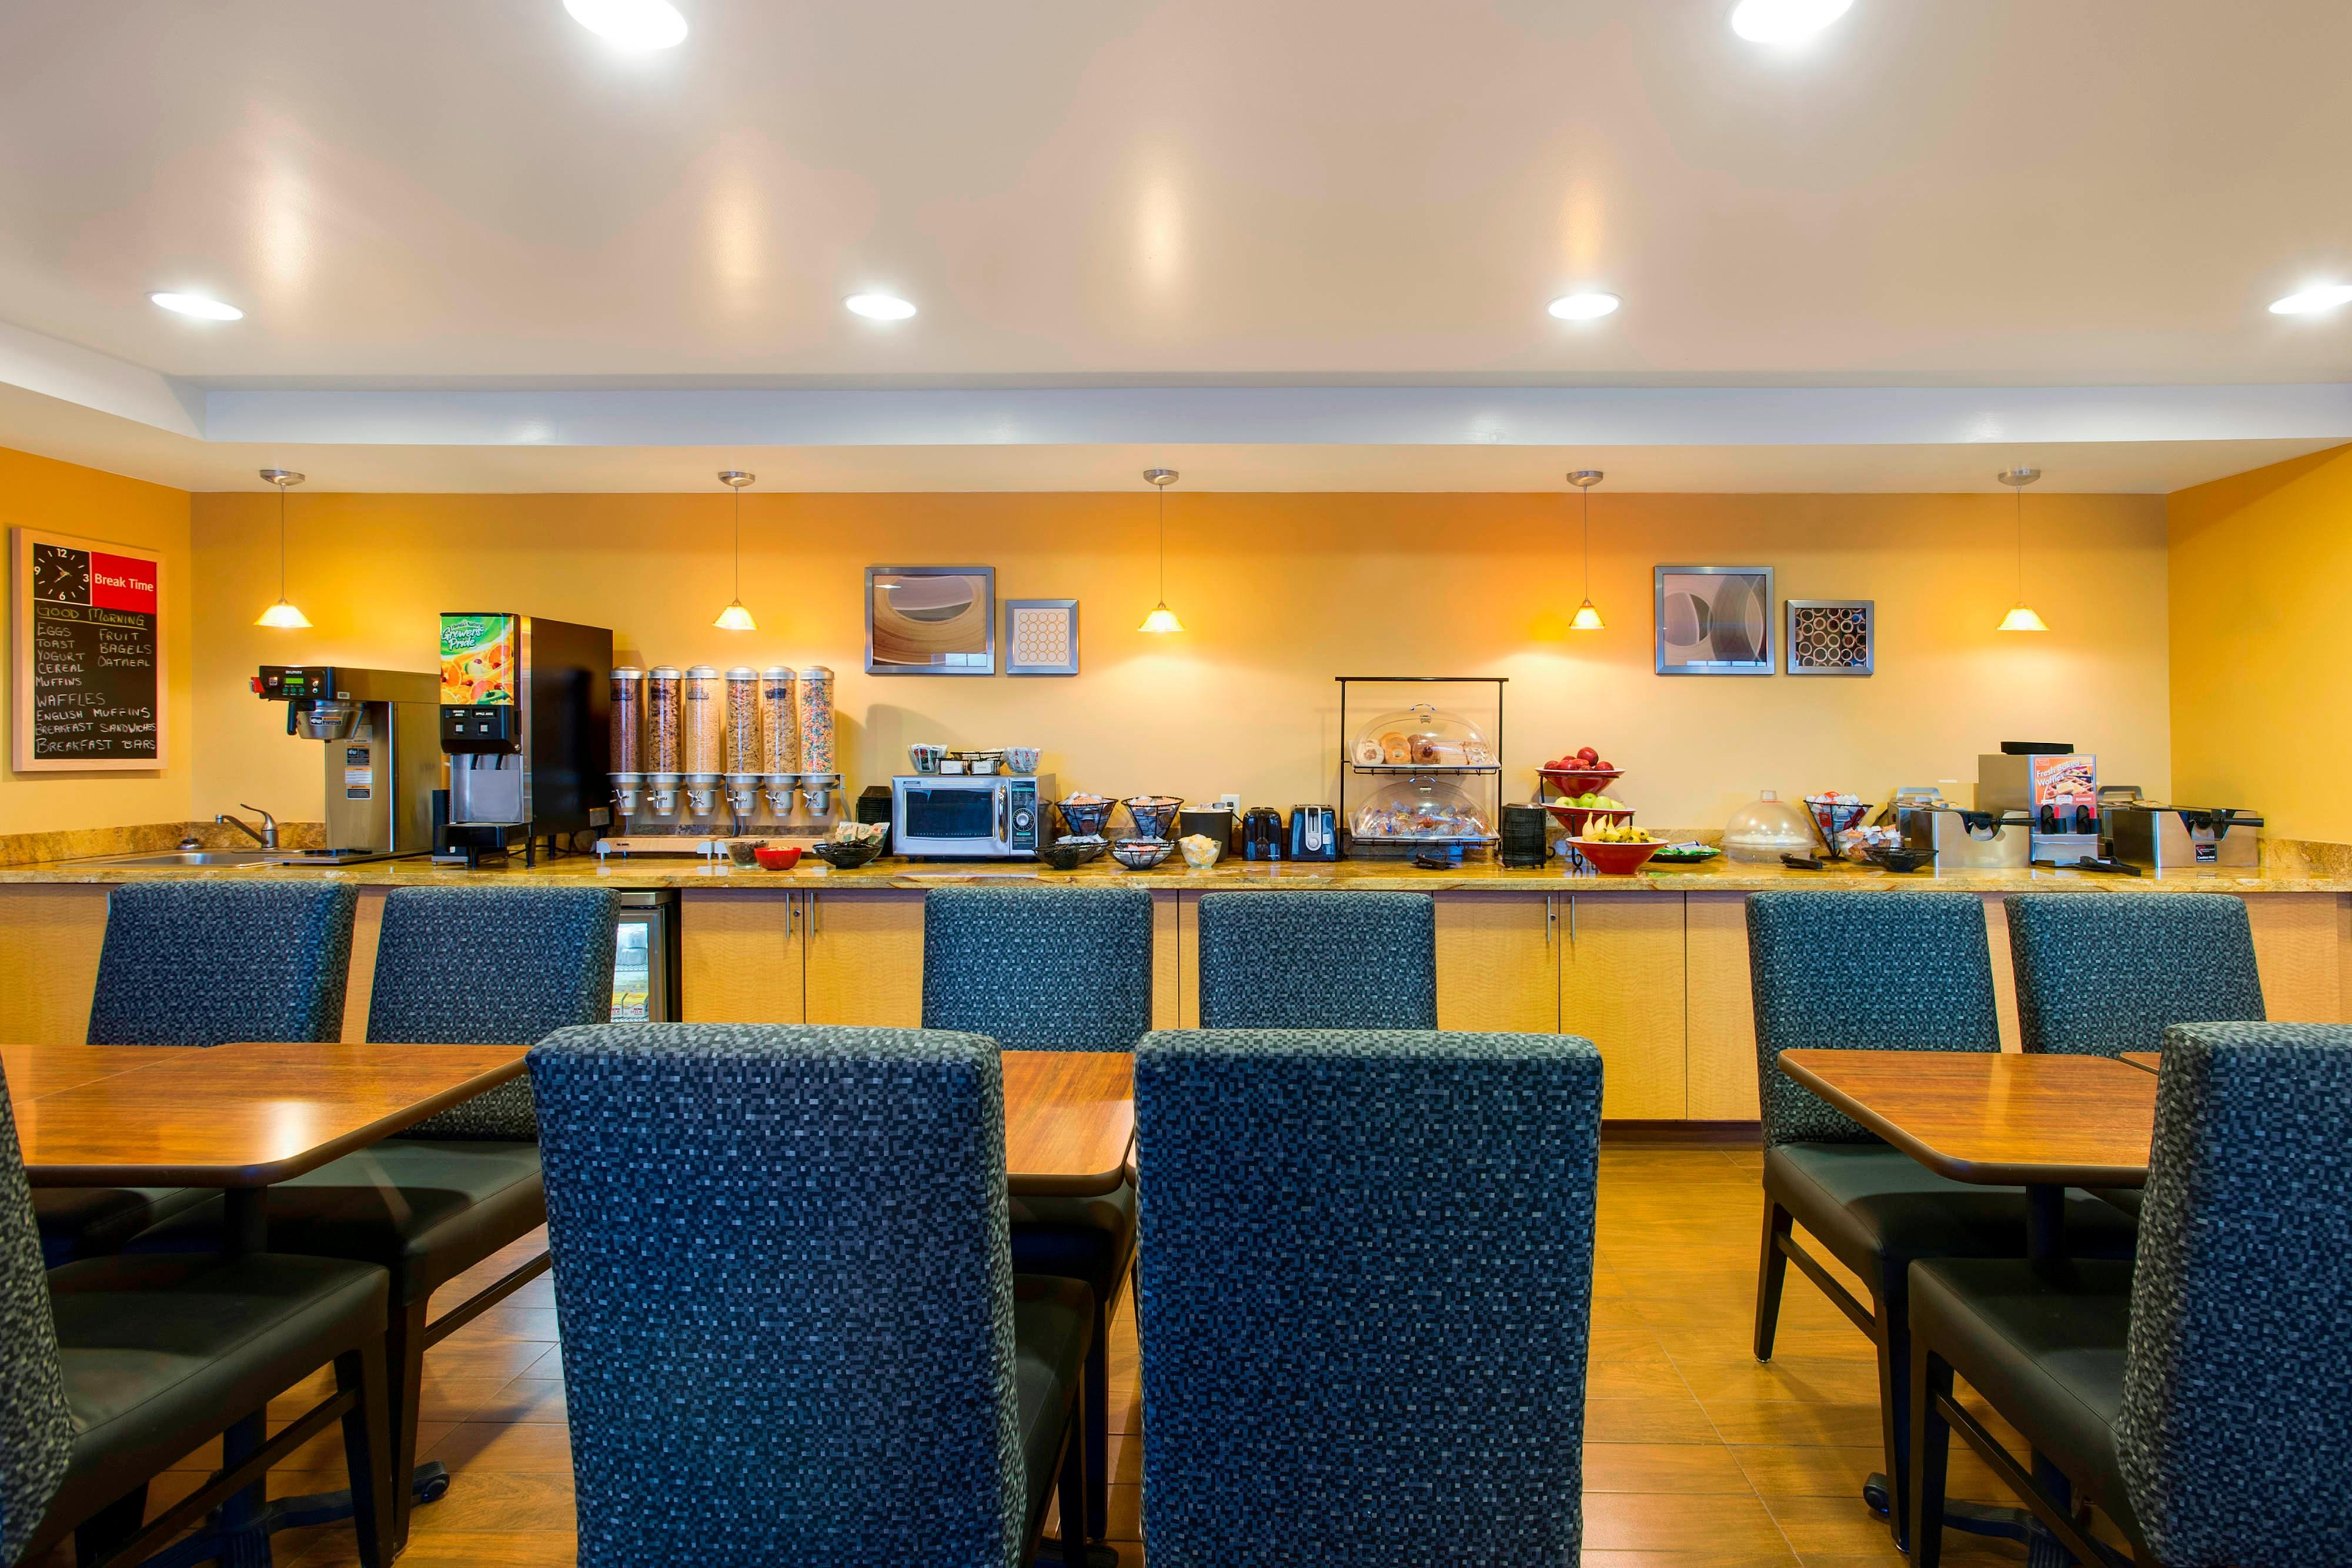 Towneplace Suites Breakfast Dining Area, Overland Park